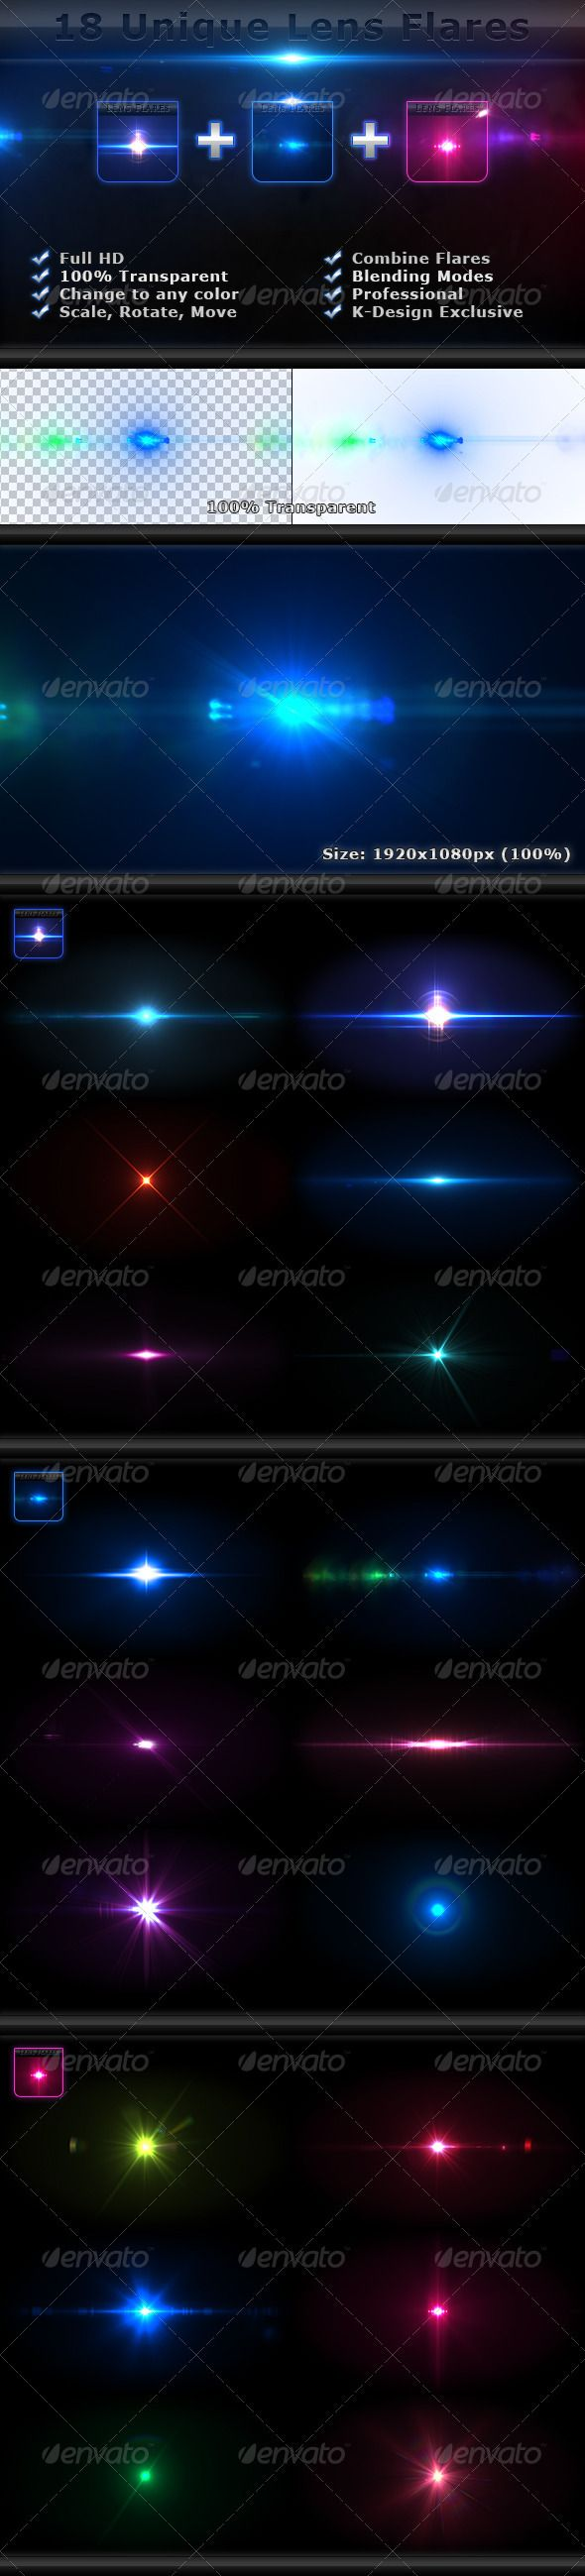 18 Unique Lens Flares - Light Effects Bundle 4-6 - #Decorative #Graphics Download here: https://graphicriver.net/item/18-unique-lens-flares-light-effects-bundle-46/2426515?ref=alena994